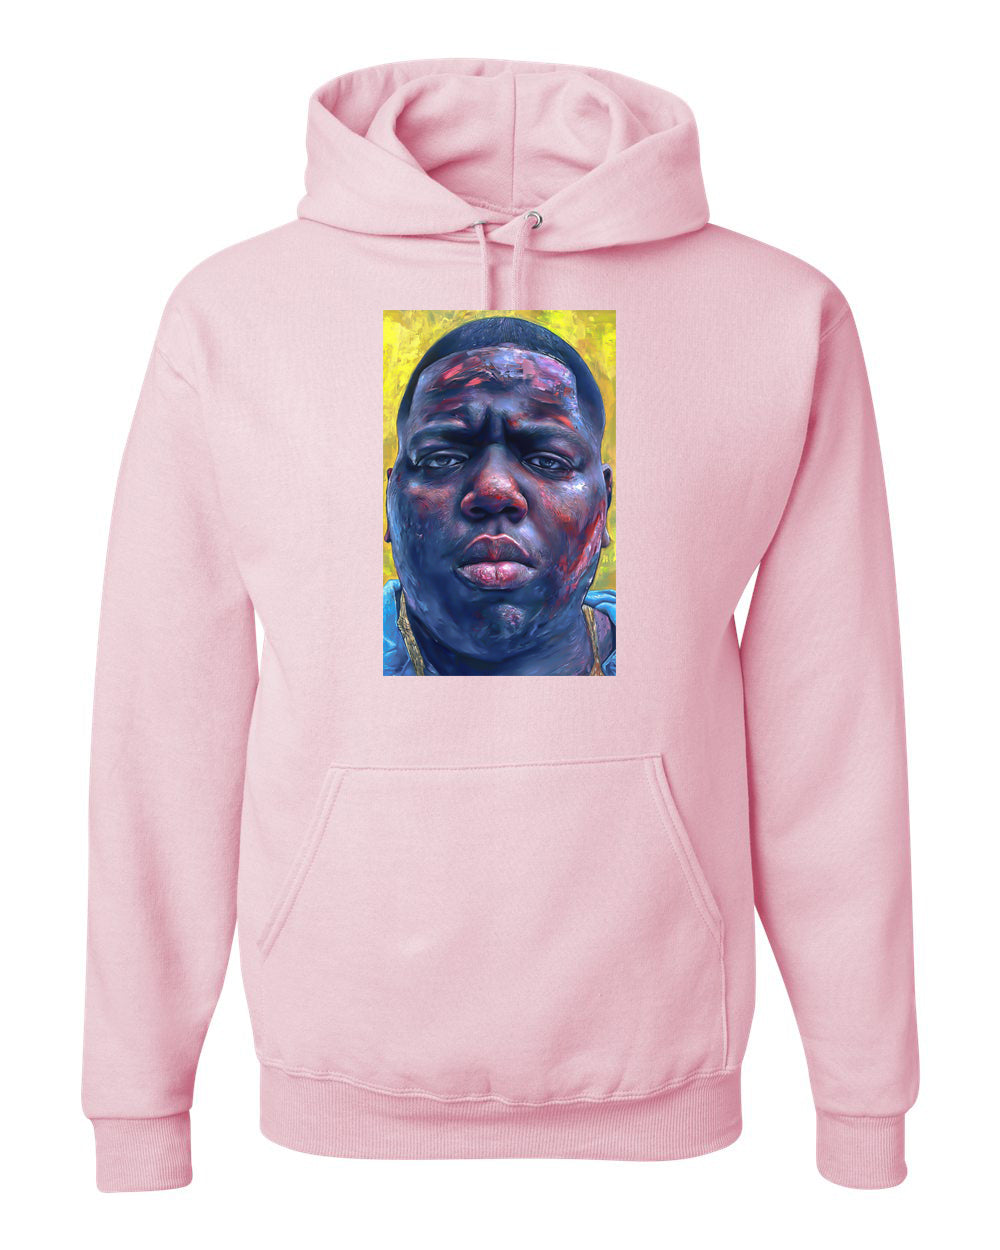 Biggie Hoodie - Pink - TOPS, TSS CUSTOM GRPHX, SNEAKER STUDIO, GOLDEN GILT, DESIGN BY TSS